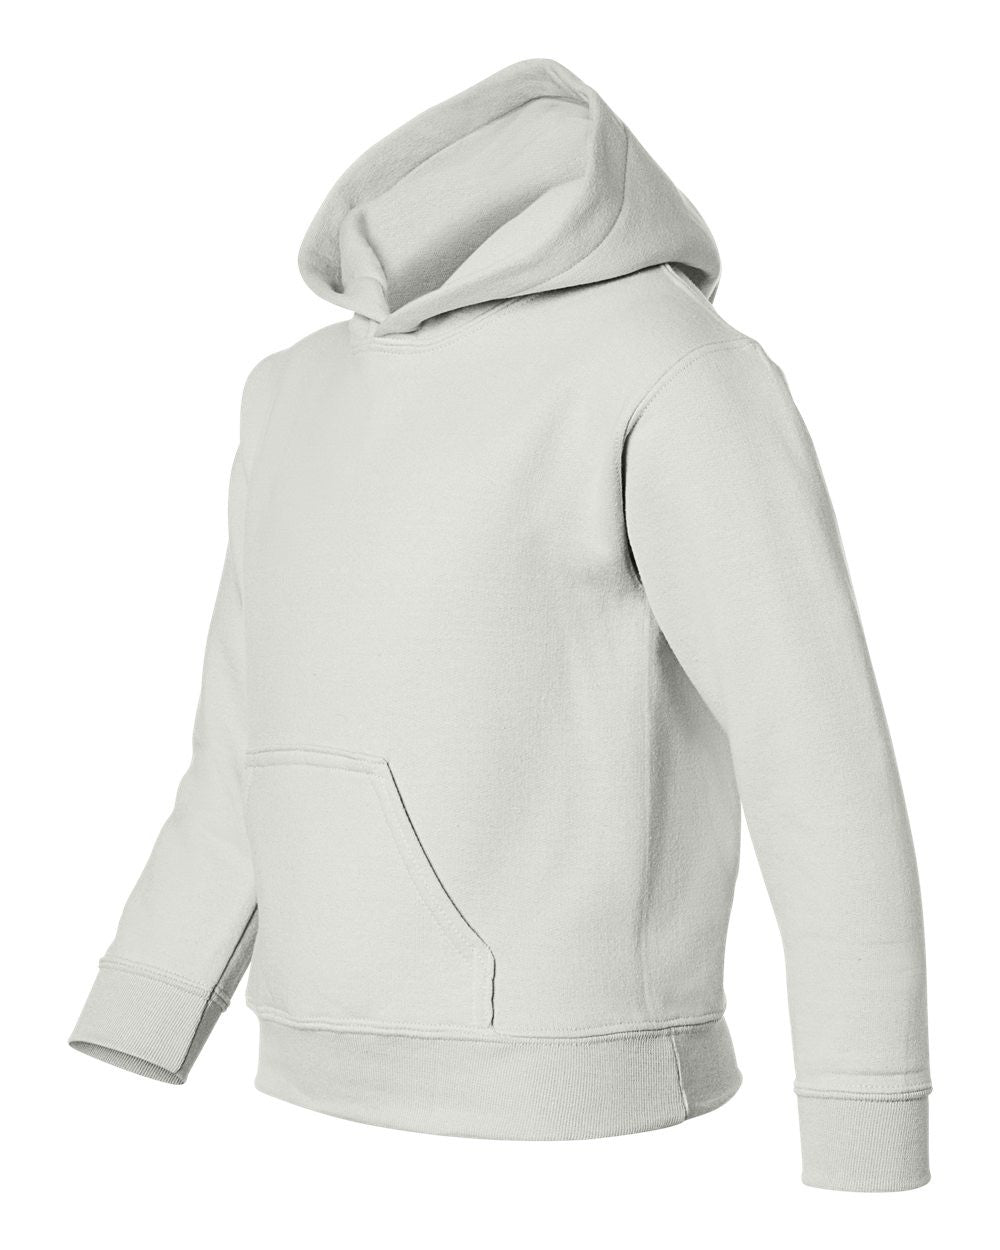 18500B- Heavy Blend Youth Hooded Sweatshirt